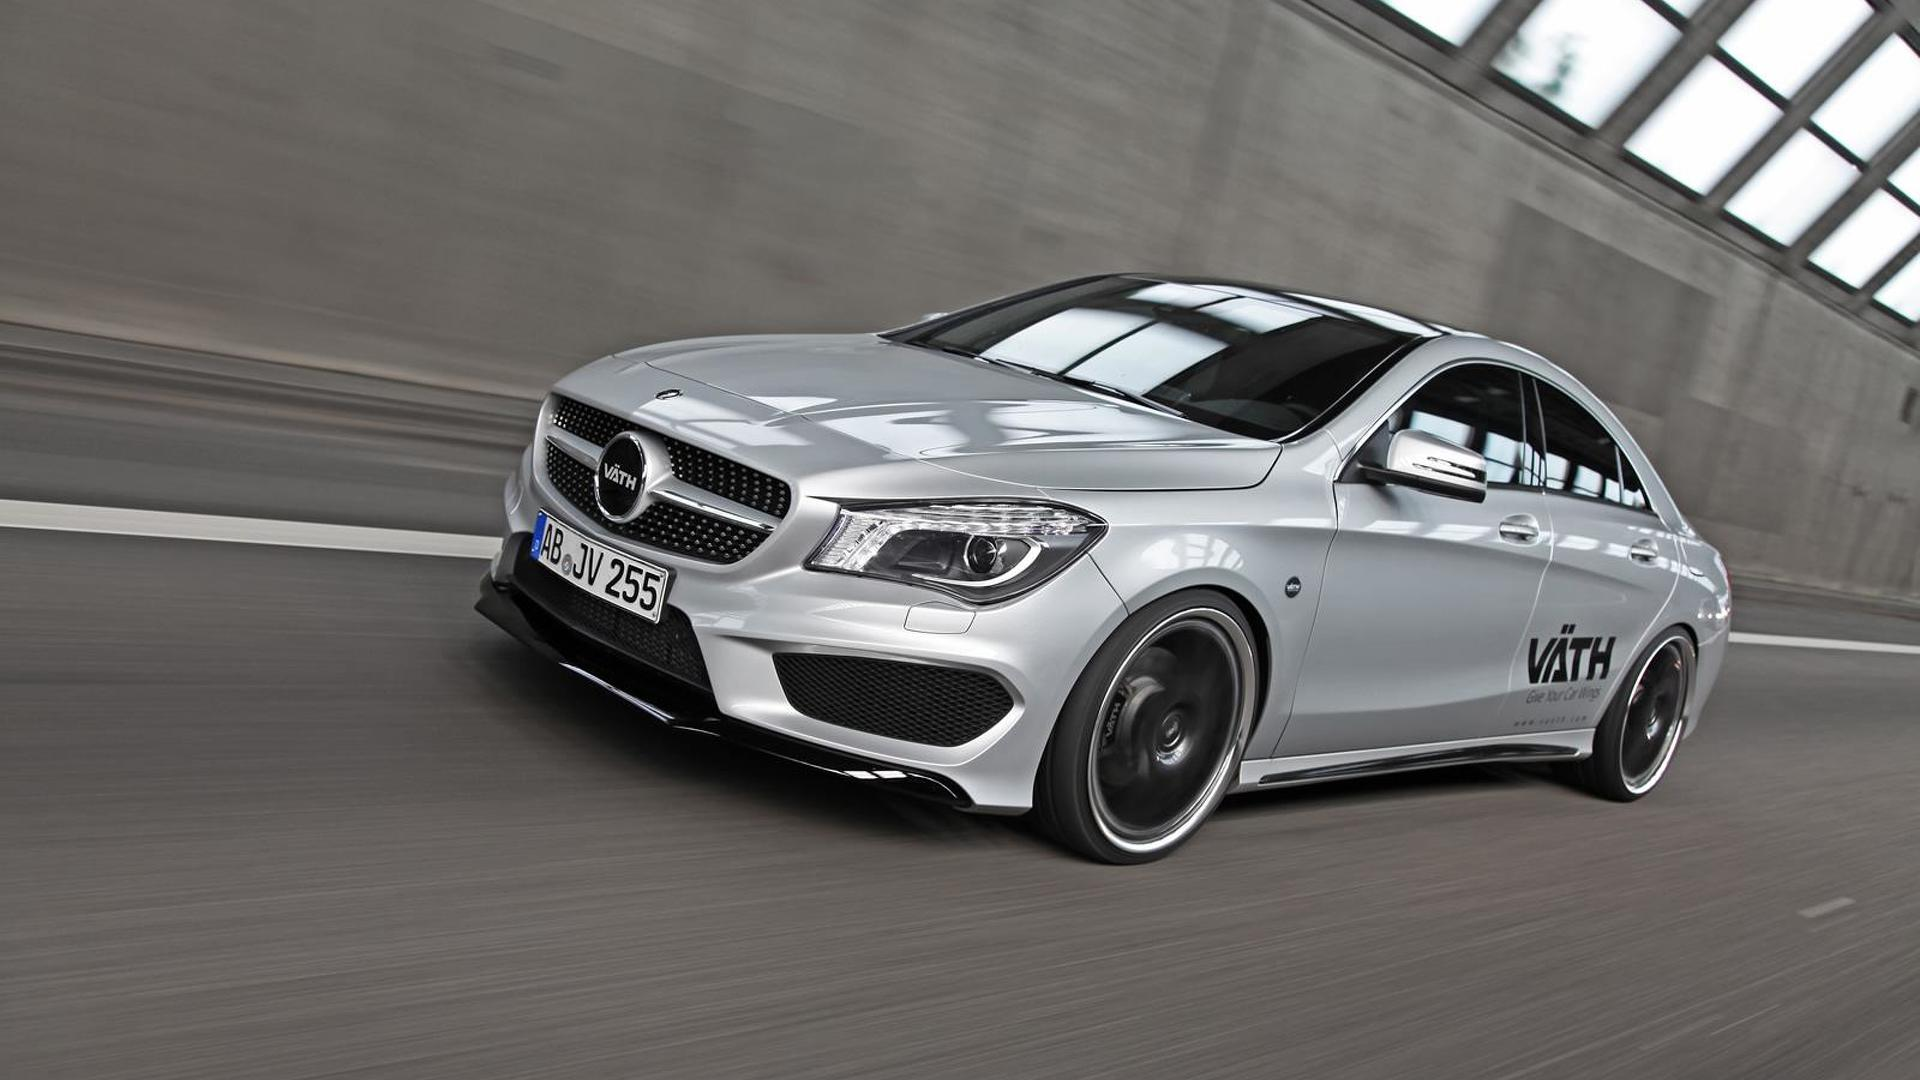 Mercedes benz cla 250 tuned by vath to 265 hp for Mercedes benz official site usa